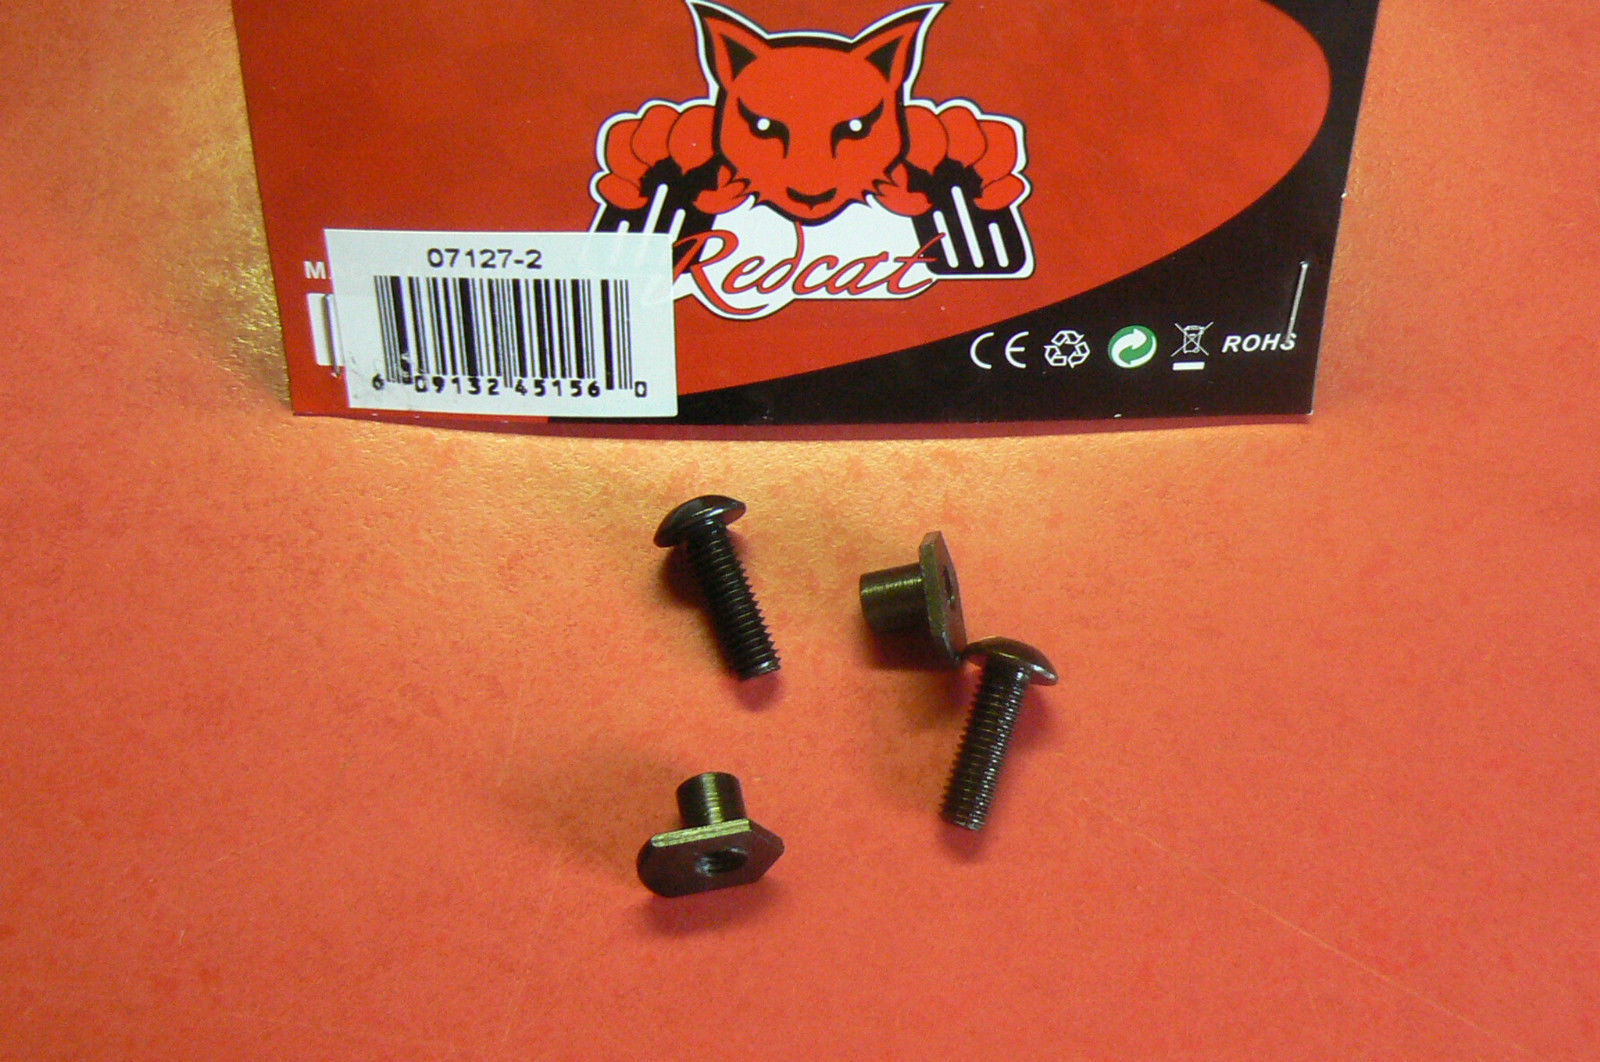 REDCAT RAMPAGE XT XB THREADED BUSHING AND SCREW FOR 07127 NEW 07127-2